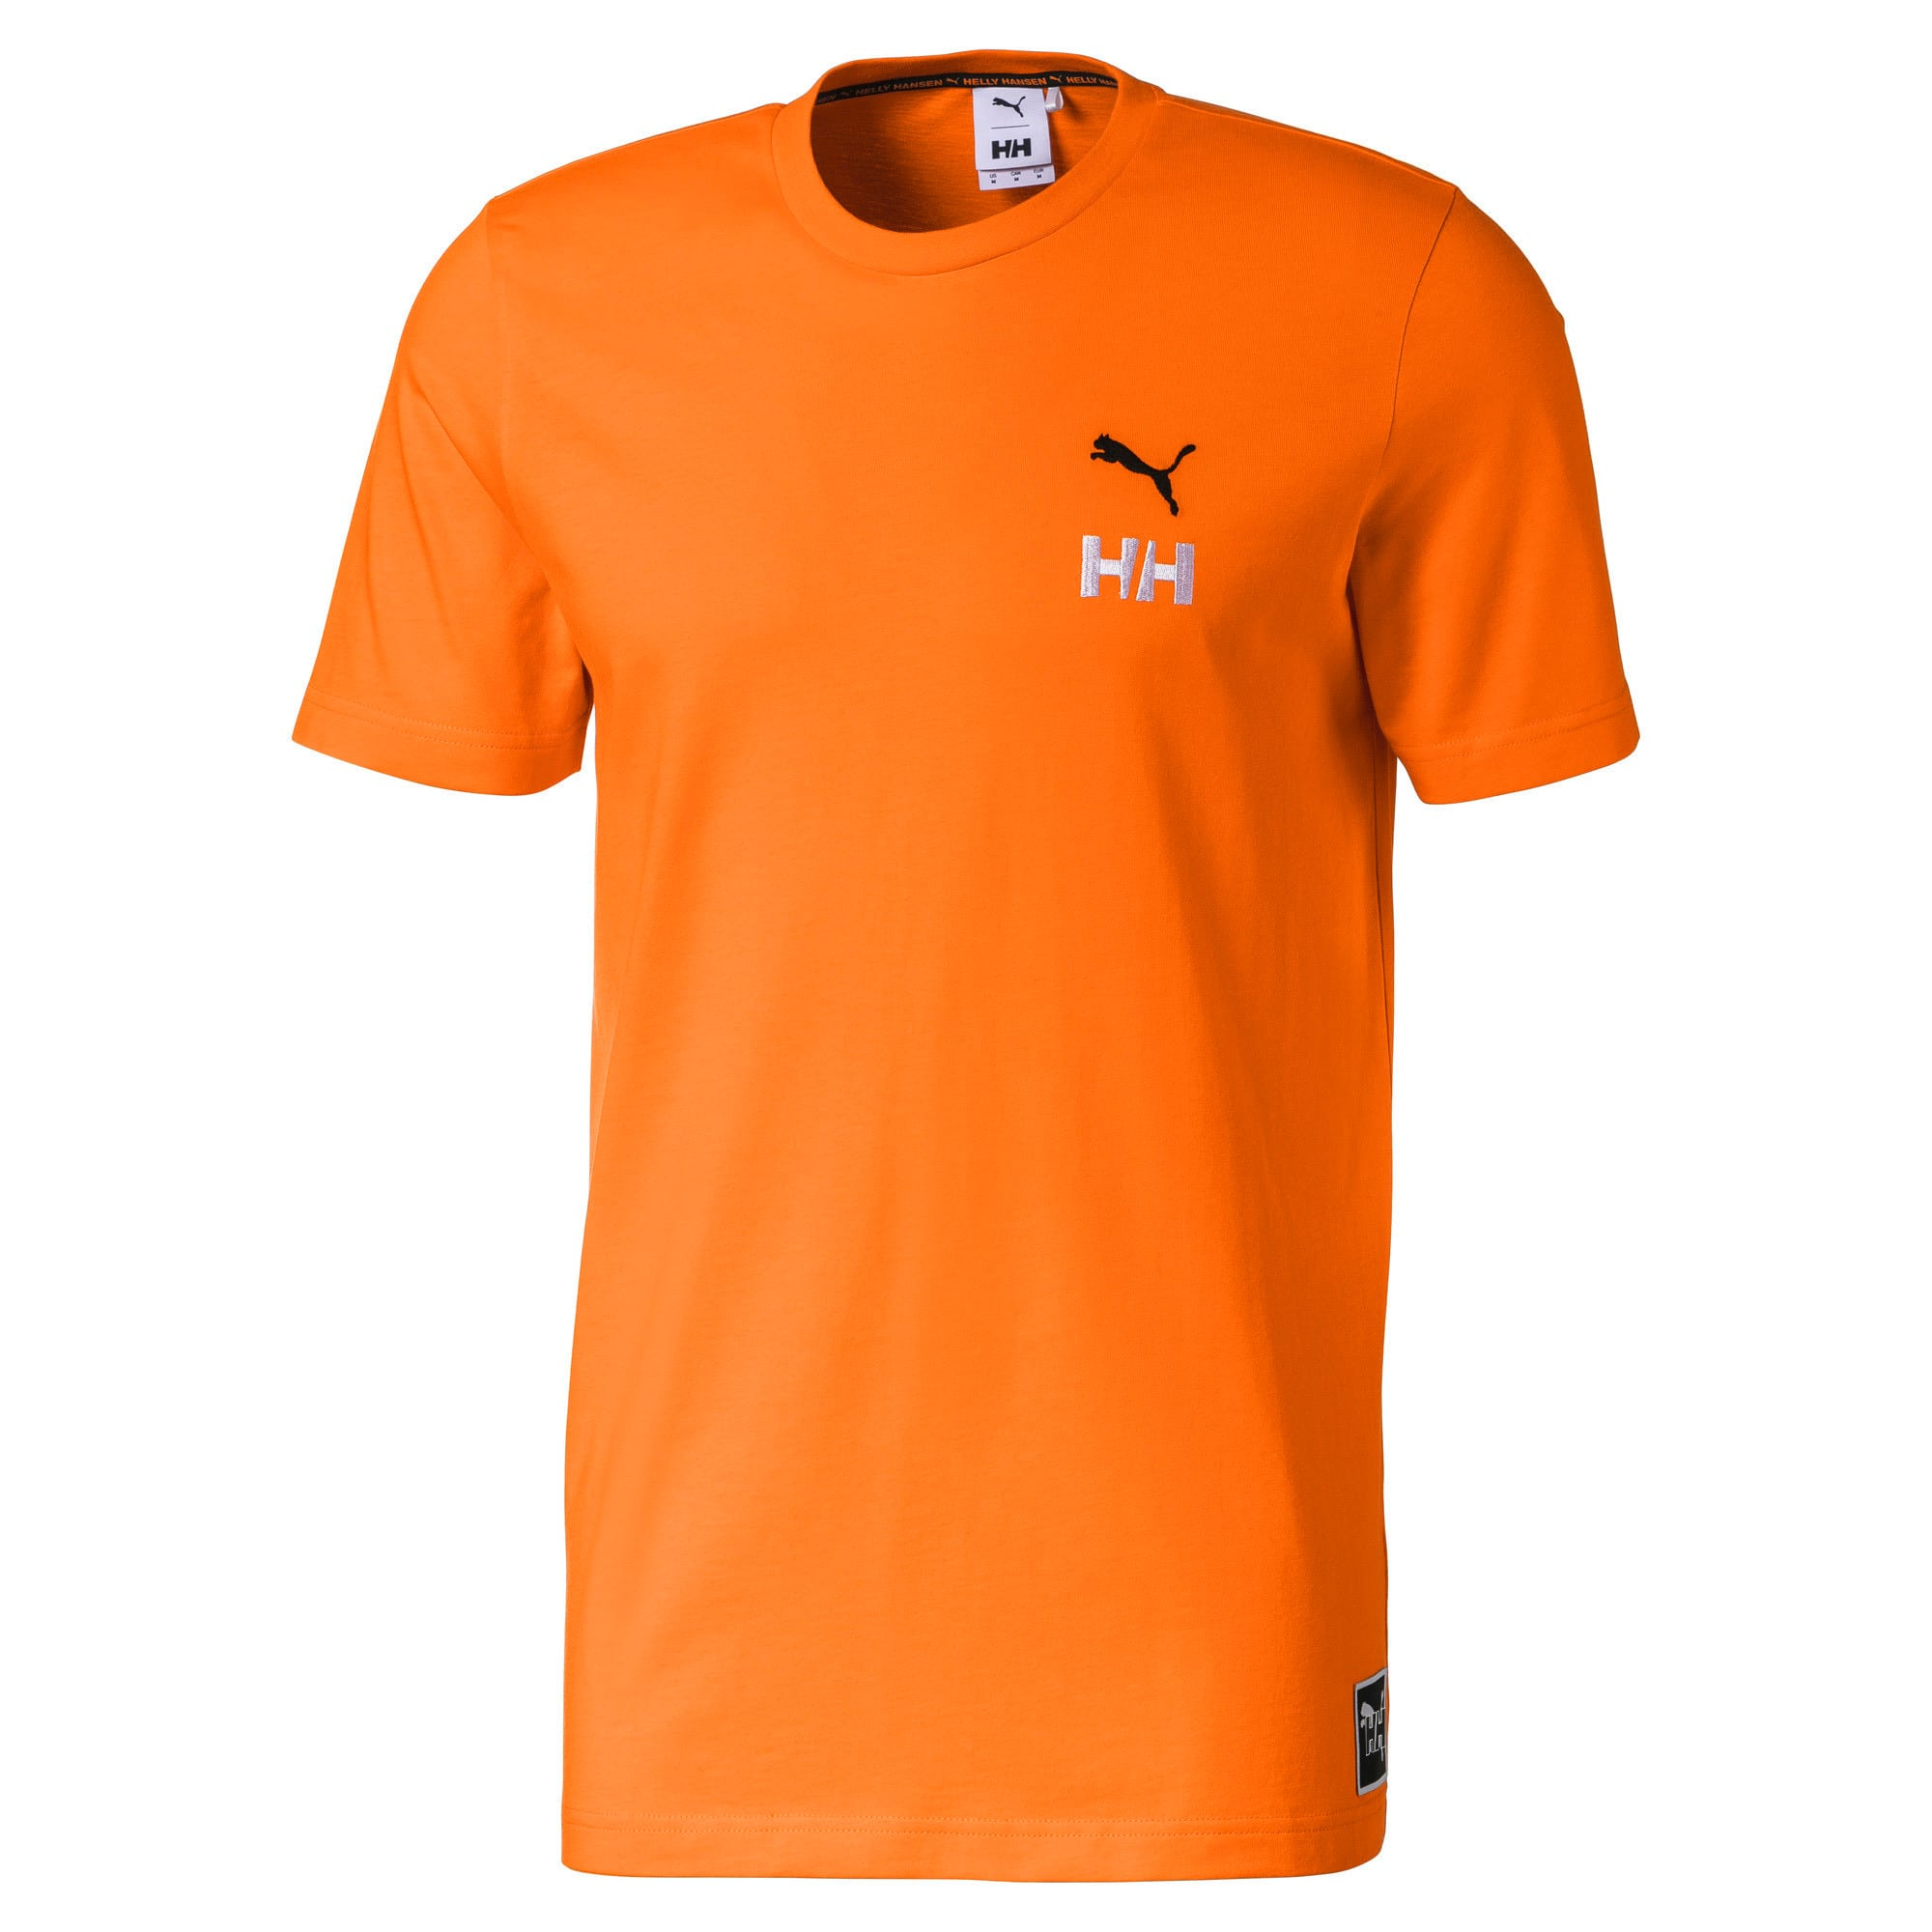 PUMA x HELLY HANSEN Crew Neck Cotton Tee, Orange Popsicle, large